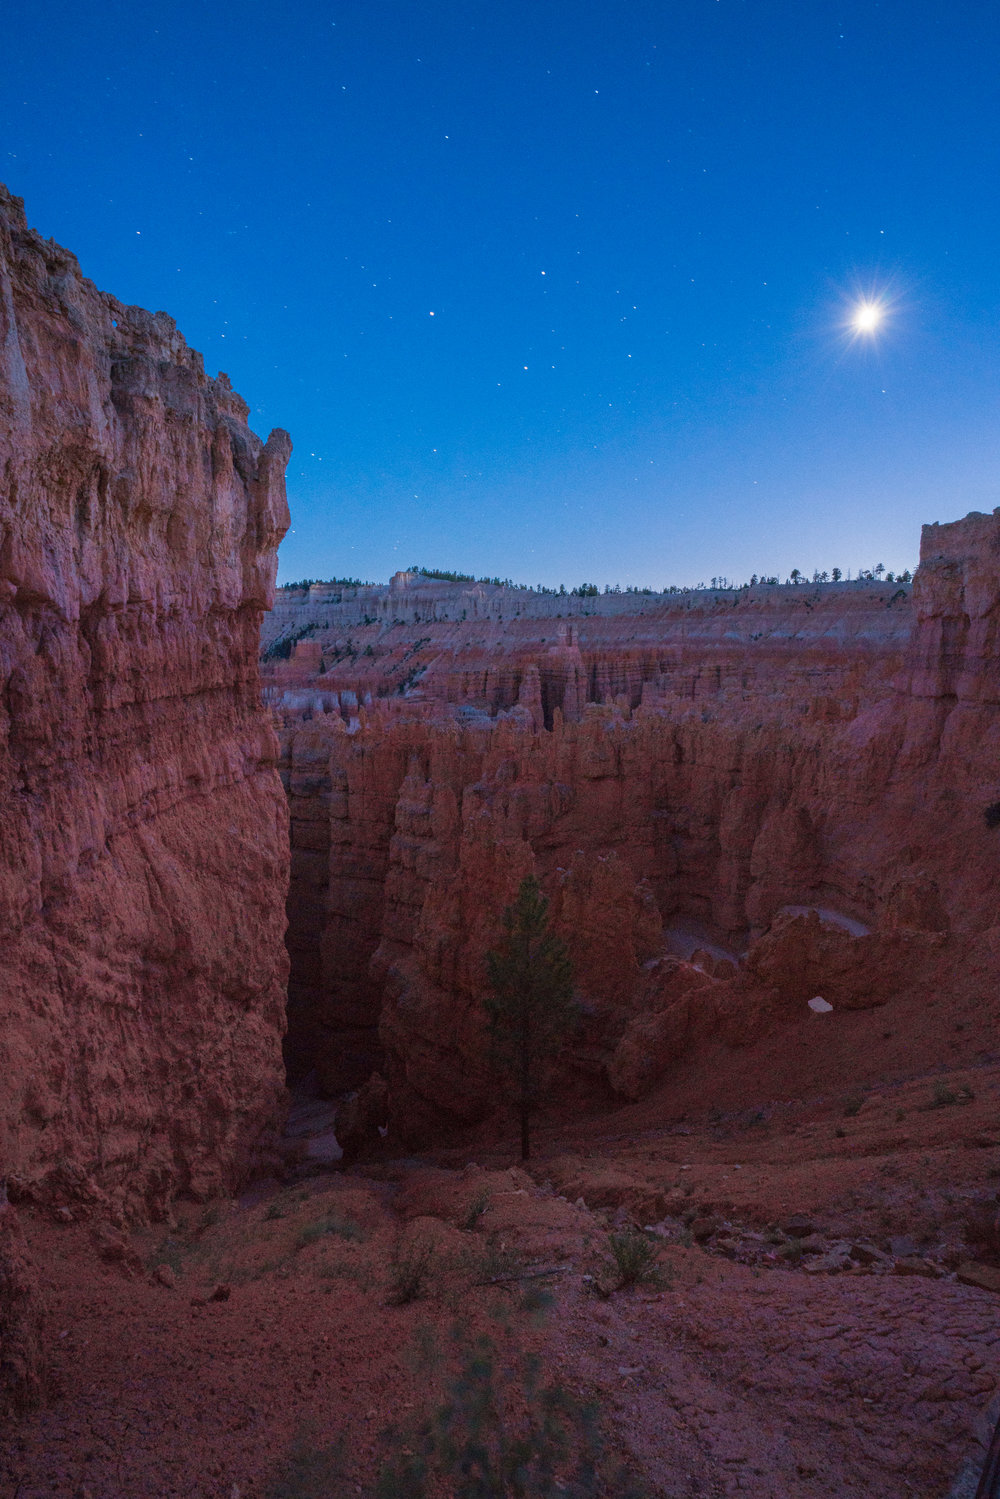 The canyon fins of Wall Street illuminated by the moon. It proved impossible to get a sharp image because the wind was whipping up through the canyon walls and shaking my tripod during the 30-second exposures.